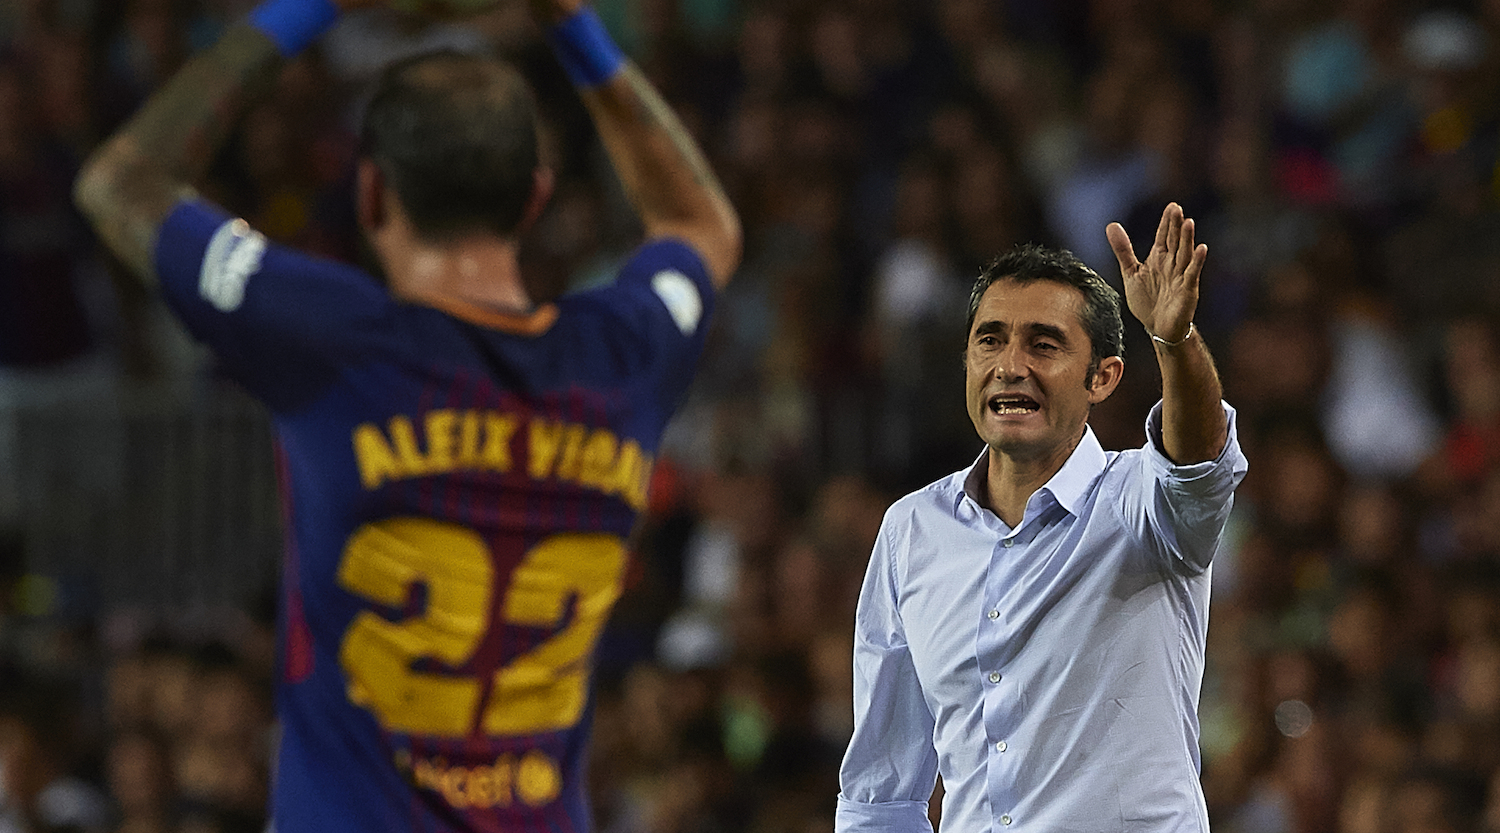 BARCELONA, SPAIN - AUGUST 13: Ernesto Valverde, Manager of Barcelona reacts during the Supercopa de Espana Supercopa Final 1st Leg match between FC Barcelona and Real Madrid at Camp Nou on August 13, 2017 in Barcelona, Spain. (Photo by Manuel Queimadelos Alonso/Getty Images,)